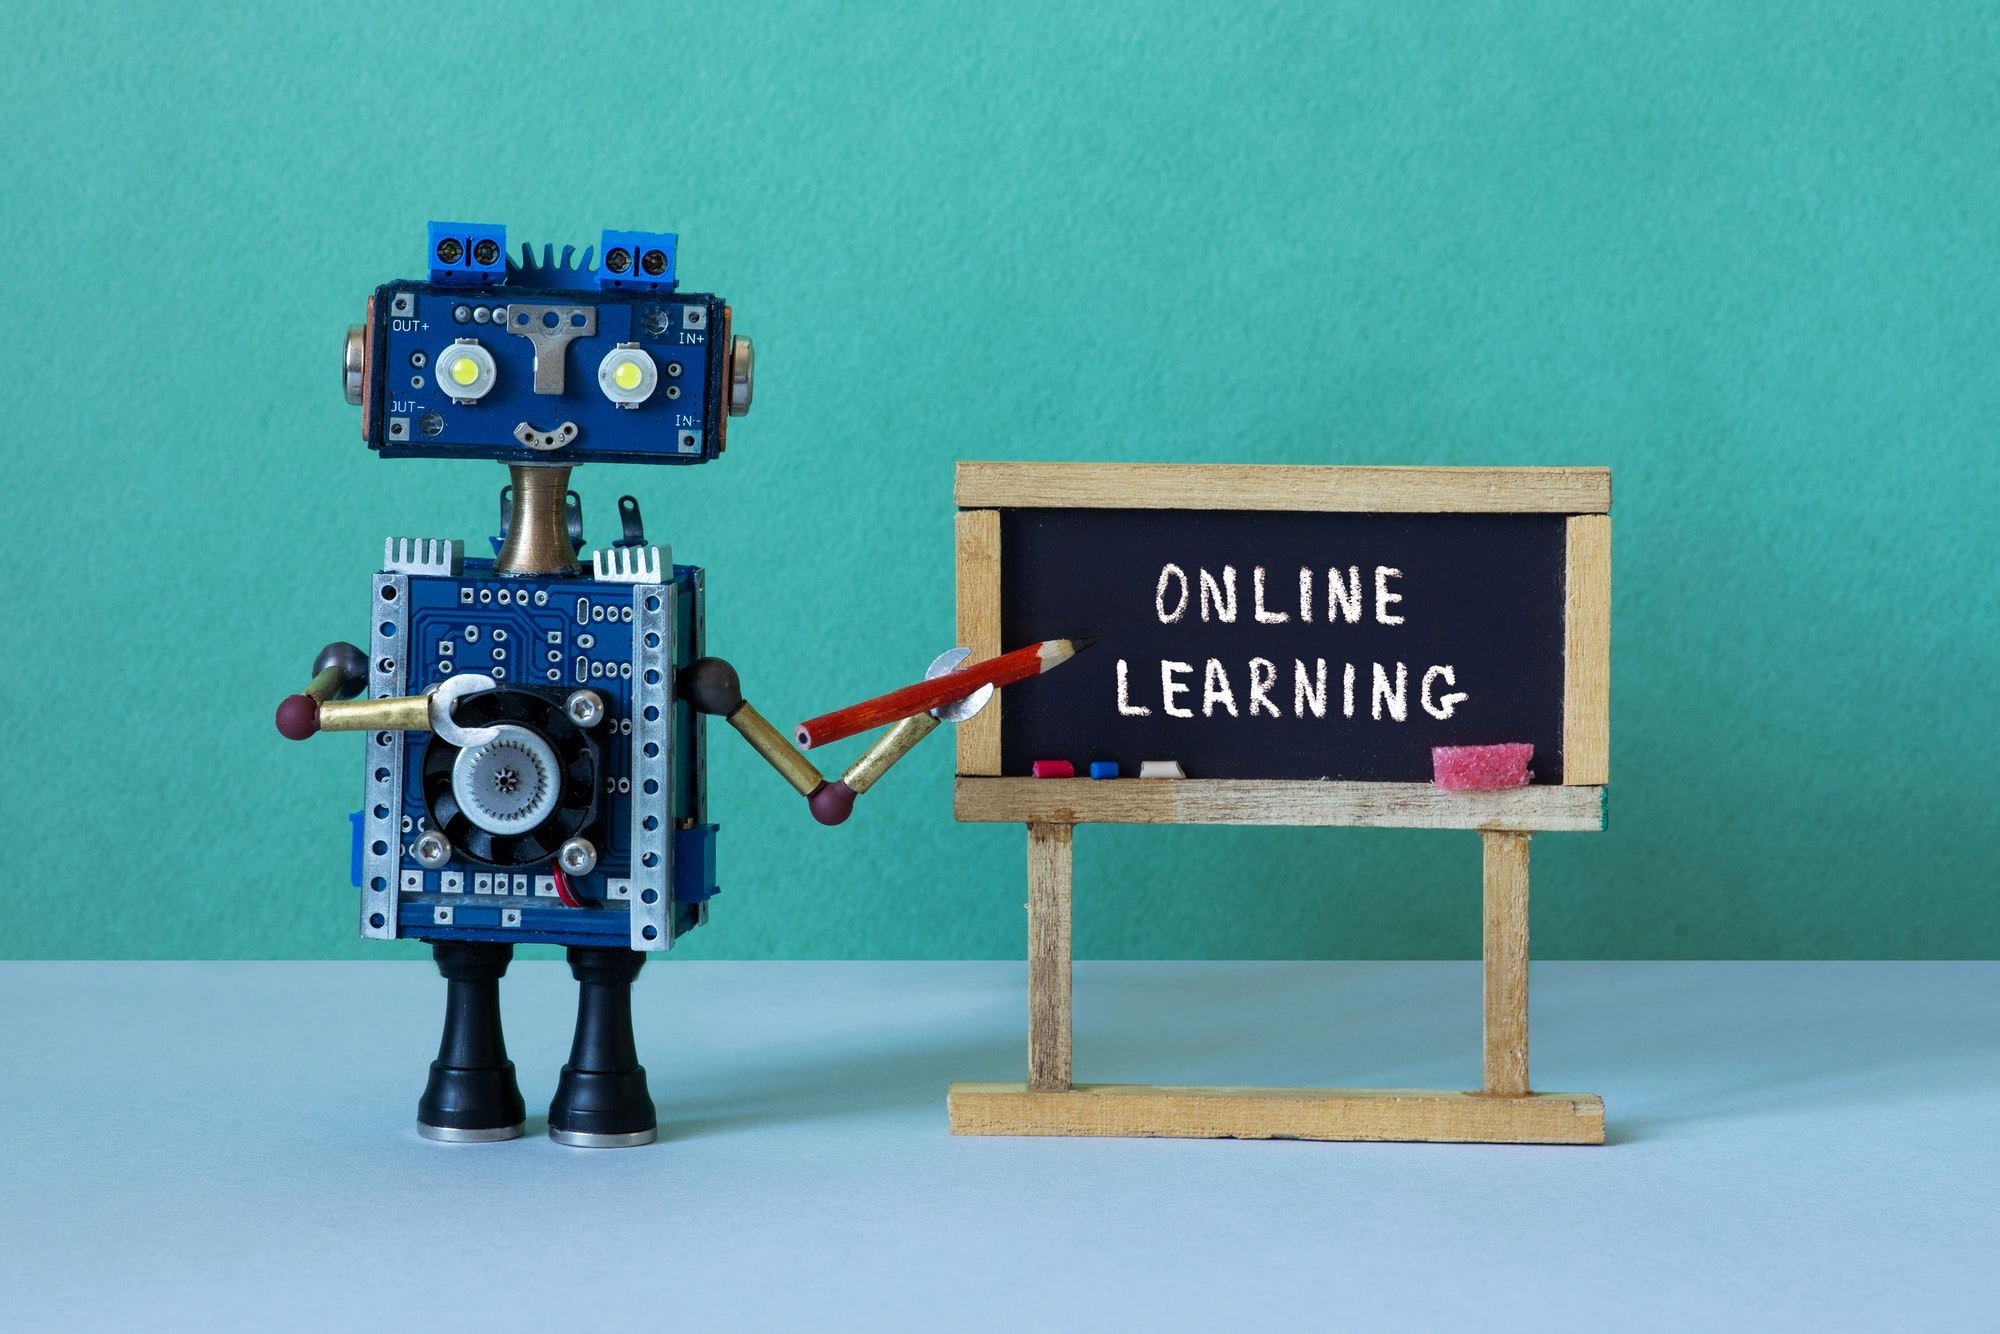 Online learning and distance education concept.